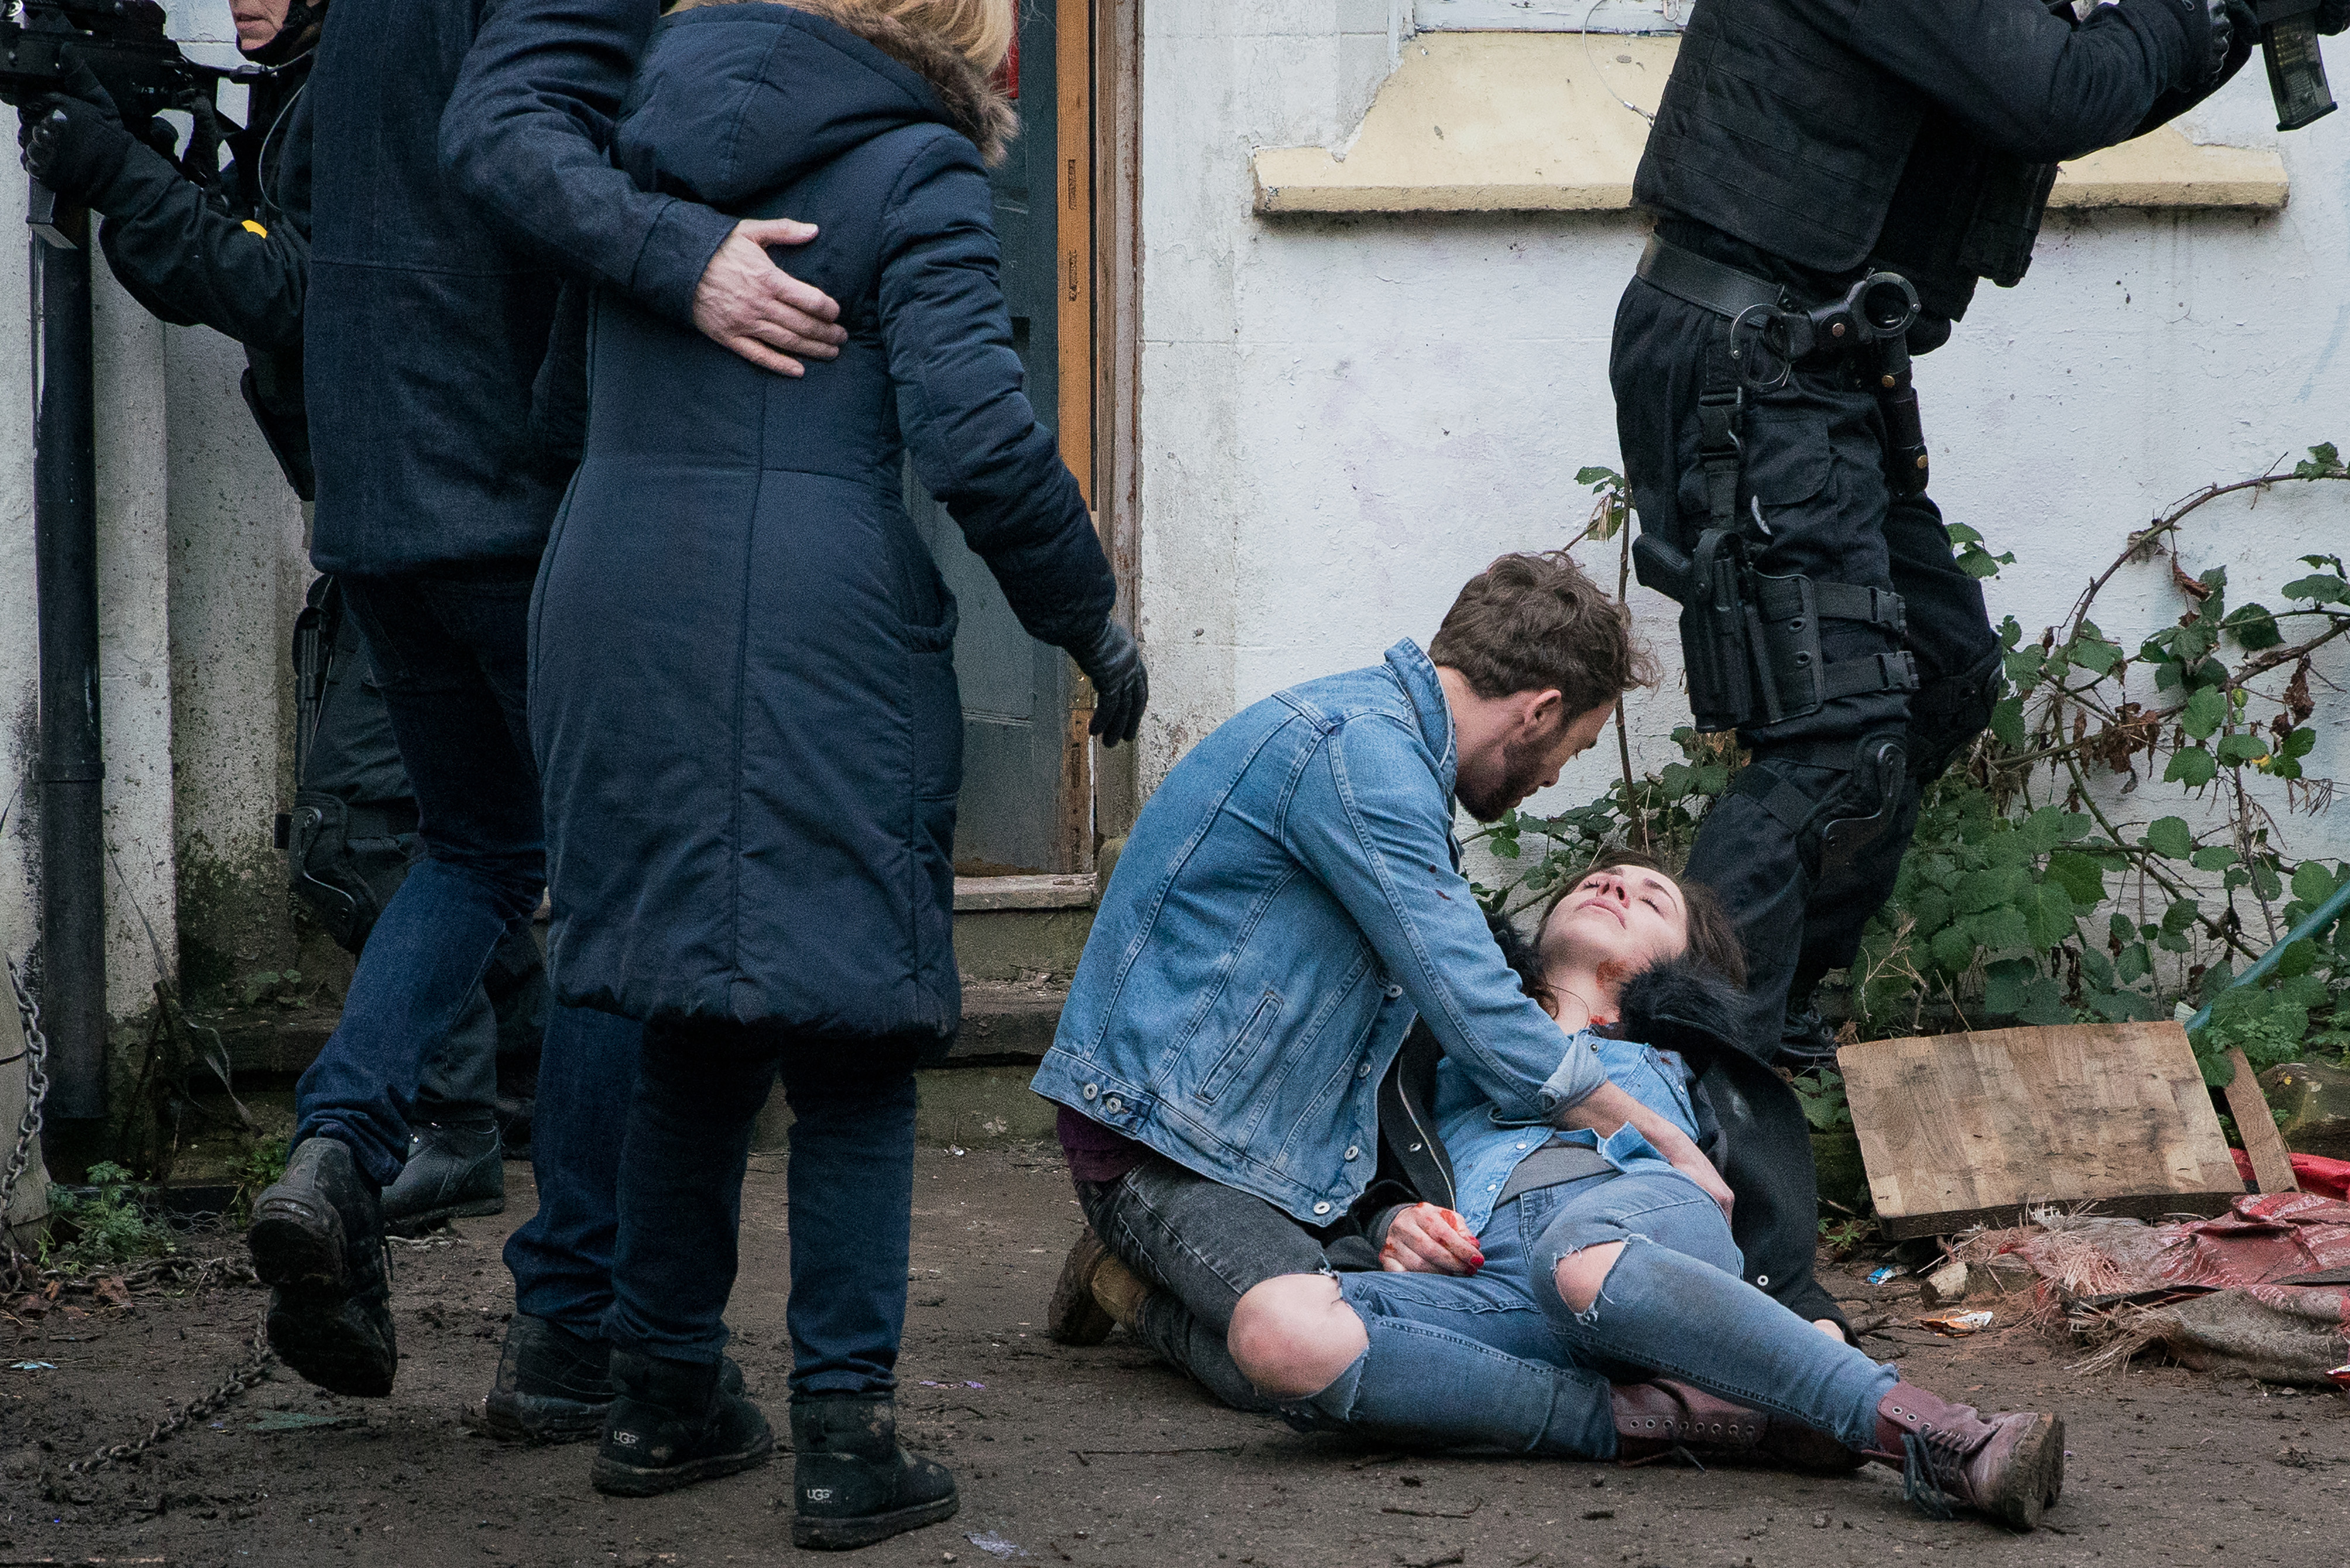 Coronation Street spoilers: Shona Ramsey to die after being stabbed by Clayton Hibbs?